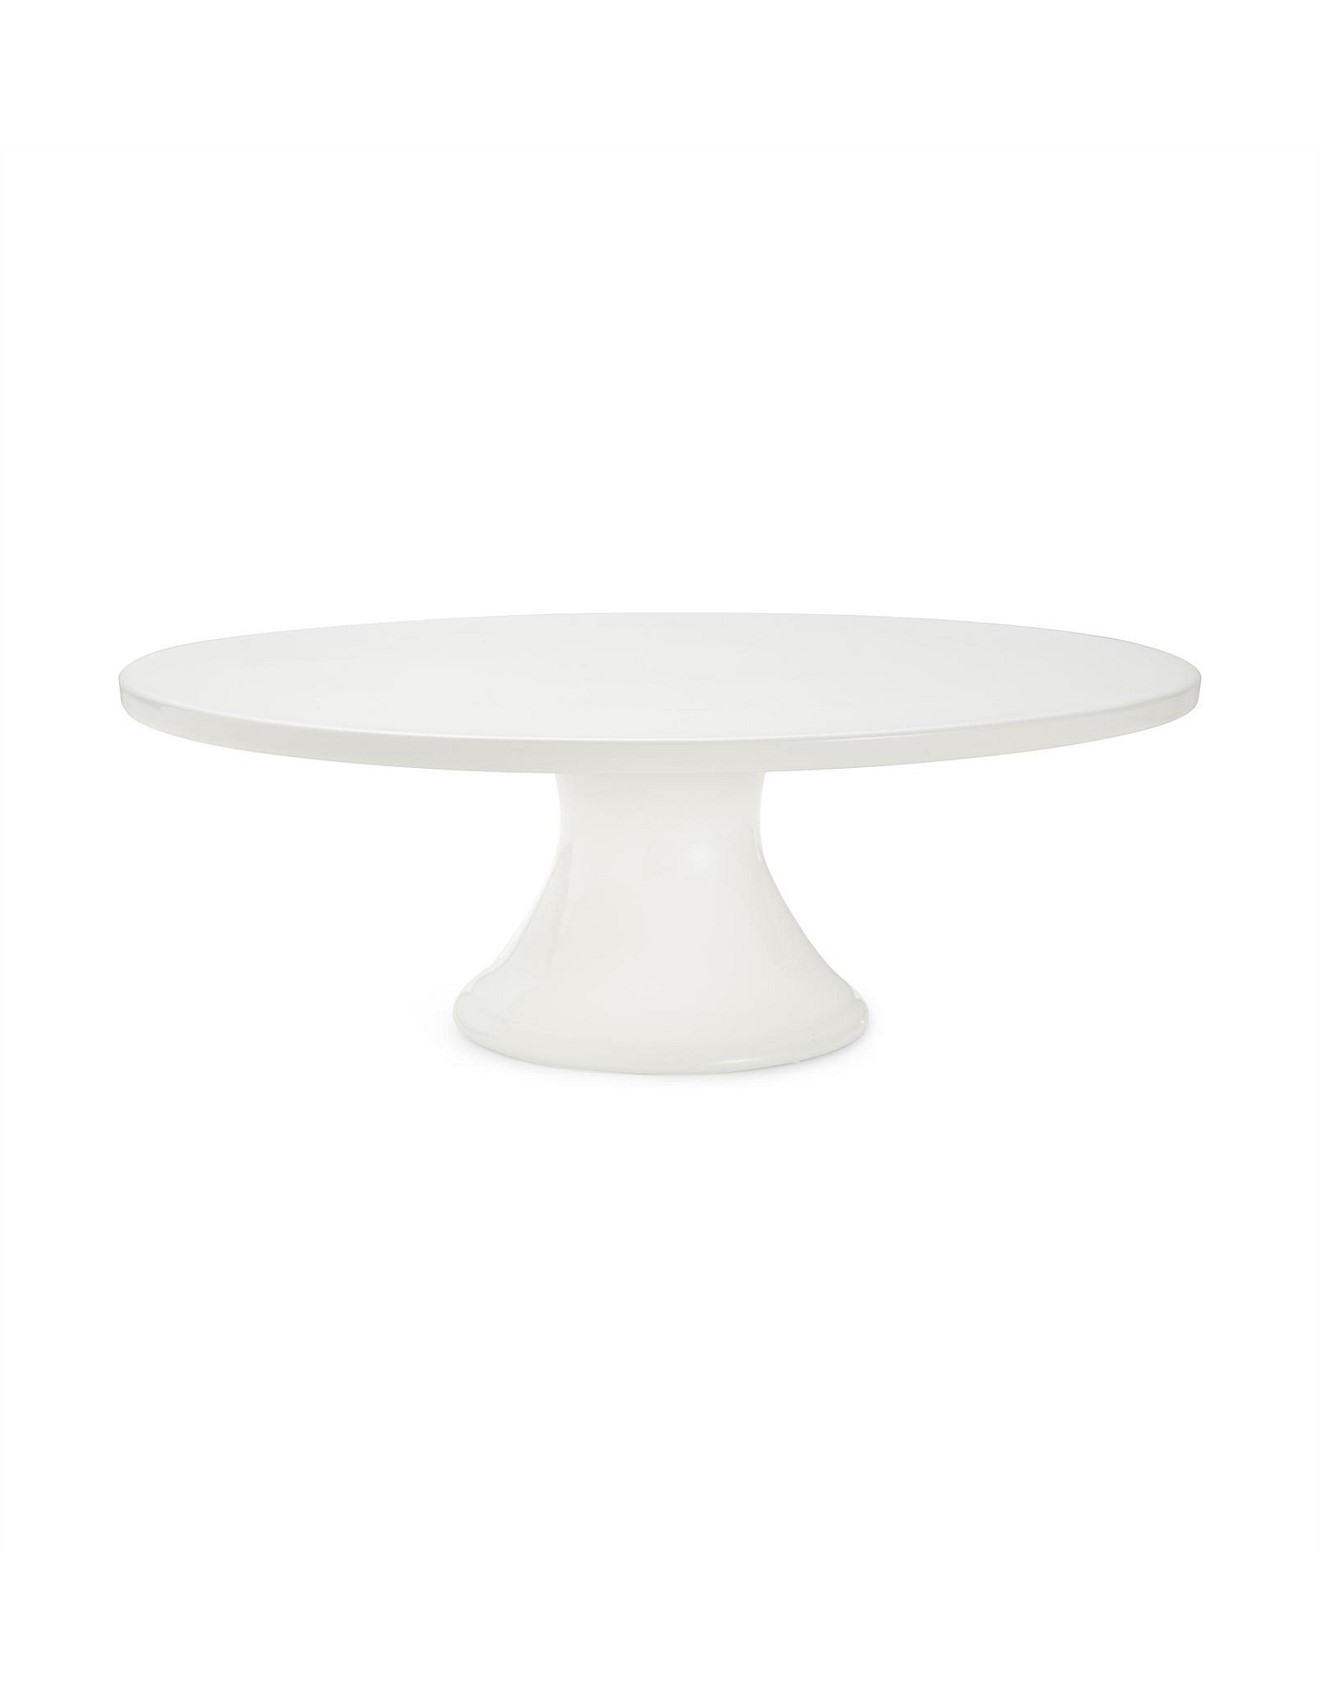 A simple white cake stand.